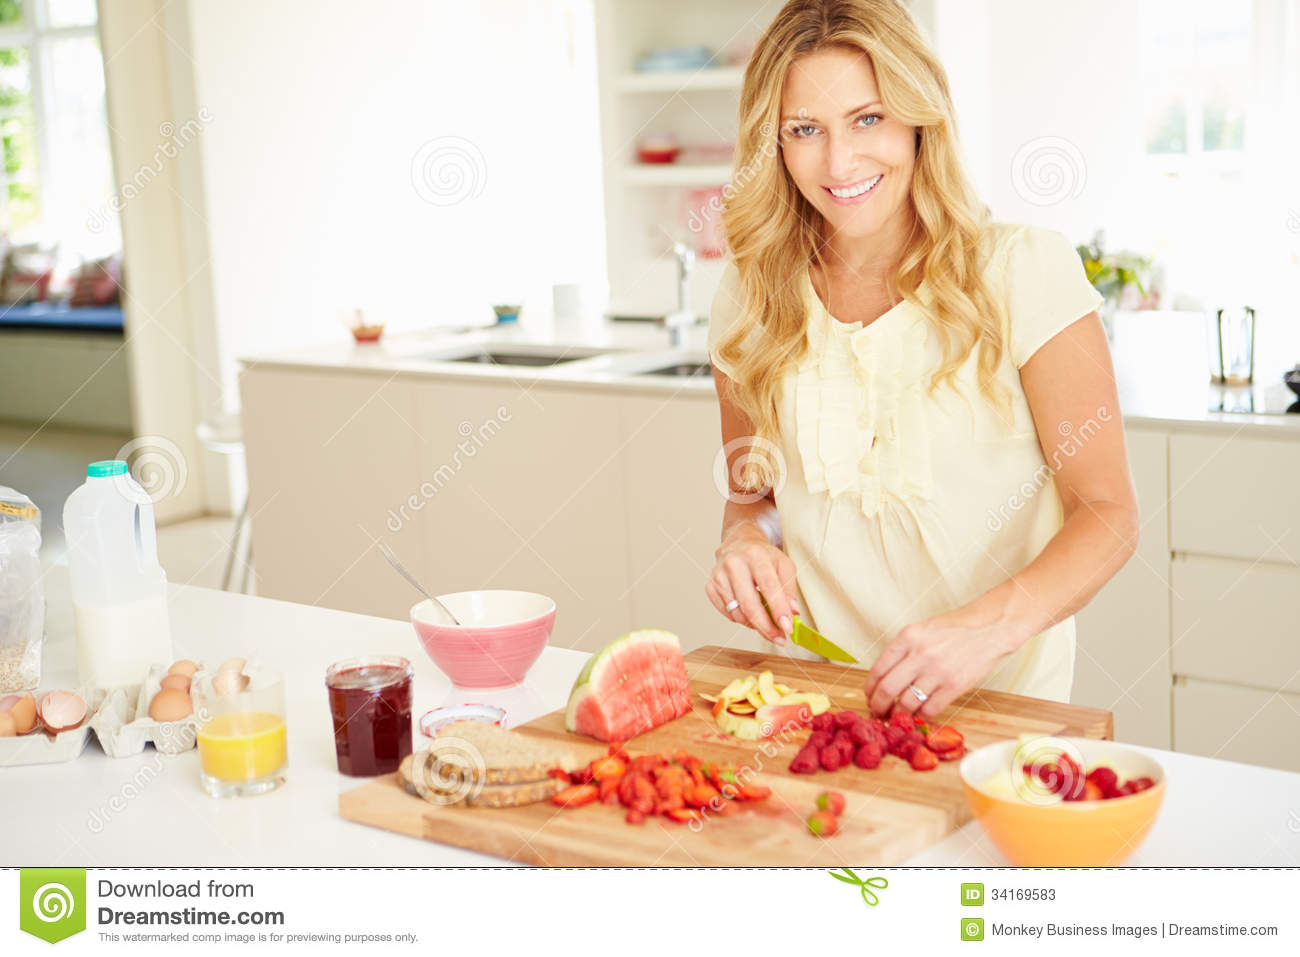 Vrouwen In De Keuken Woman Preparing Healthy Breakfast In Kitchen Stock Photos